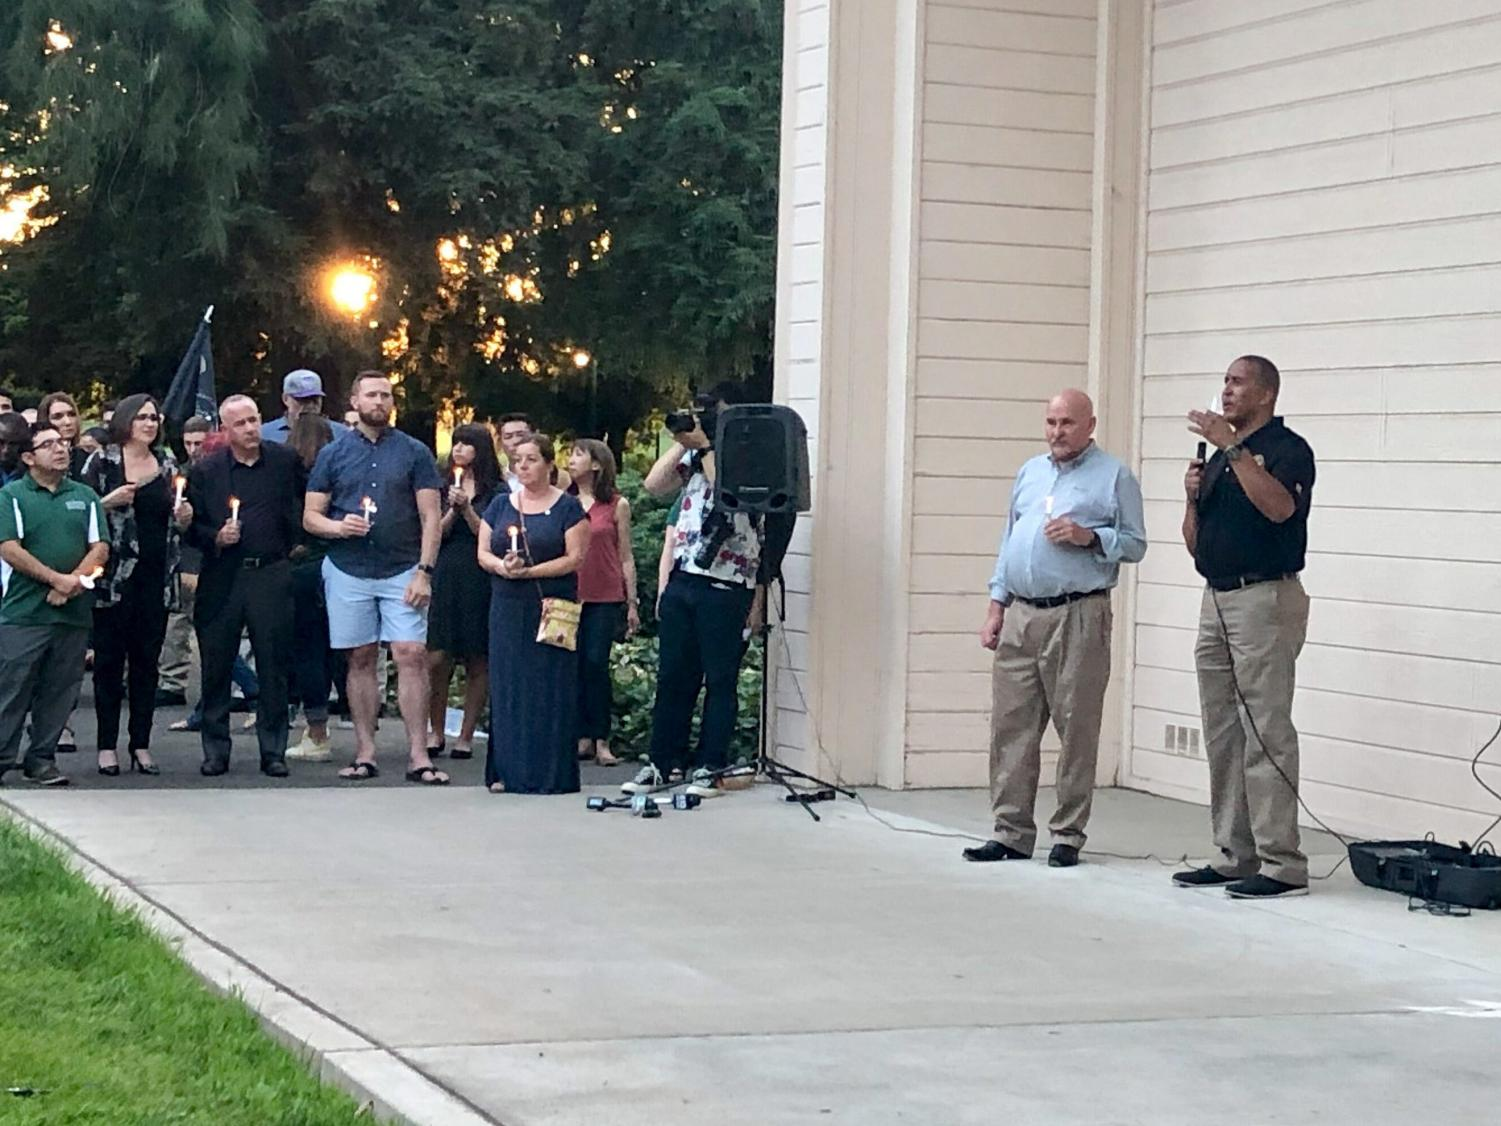 President Nelsen and LECS Founder Shelby Moffatt were among those who gave speeches at the vigil for slain Sac PD officer and Sac State alumna Tara O'Sullivan.